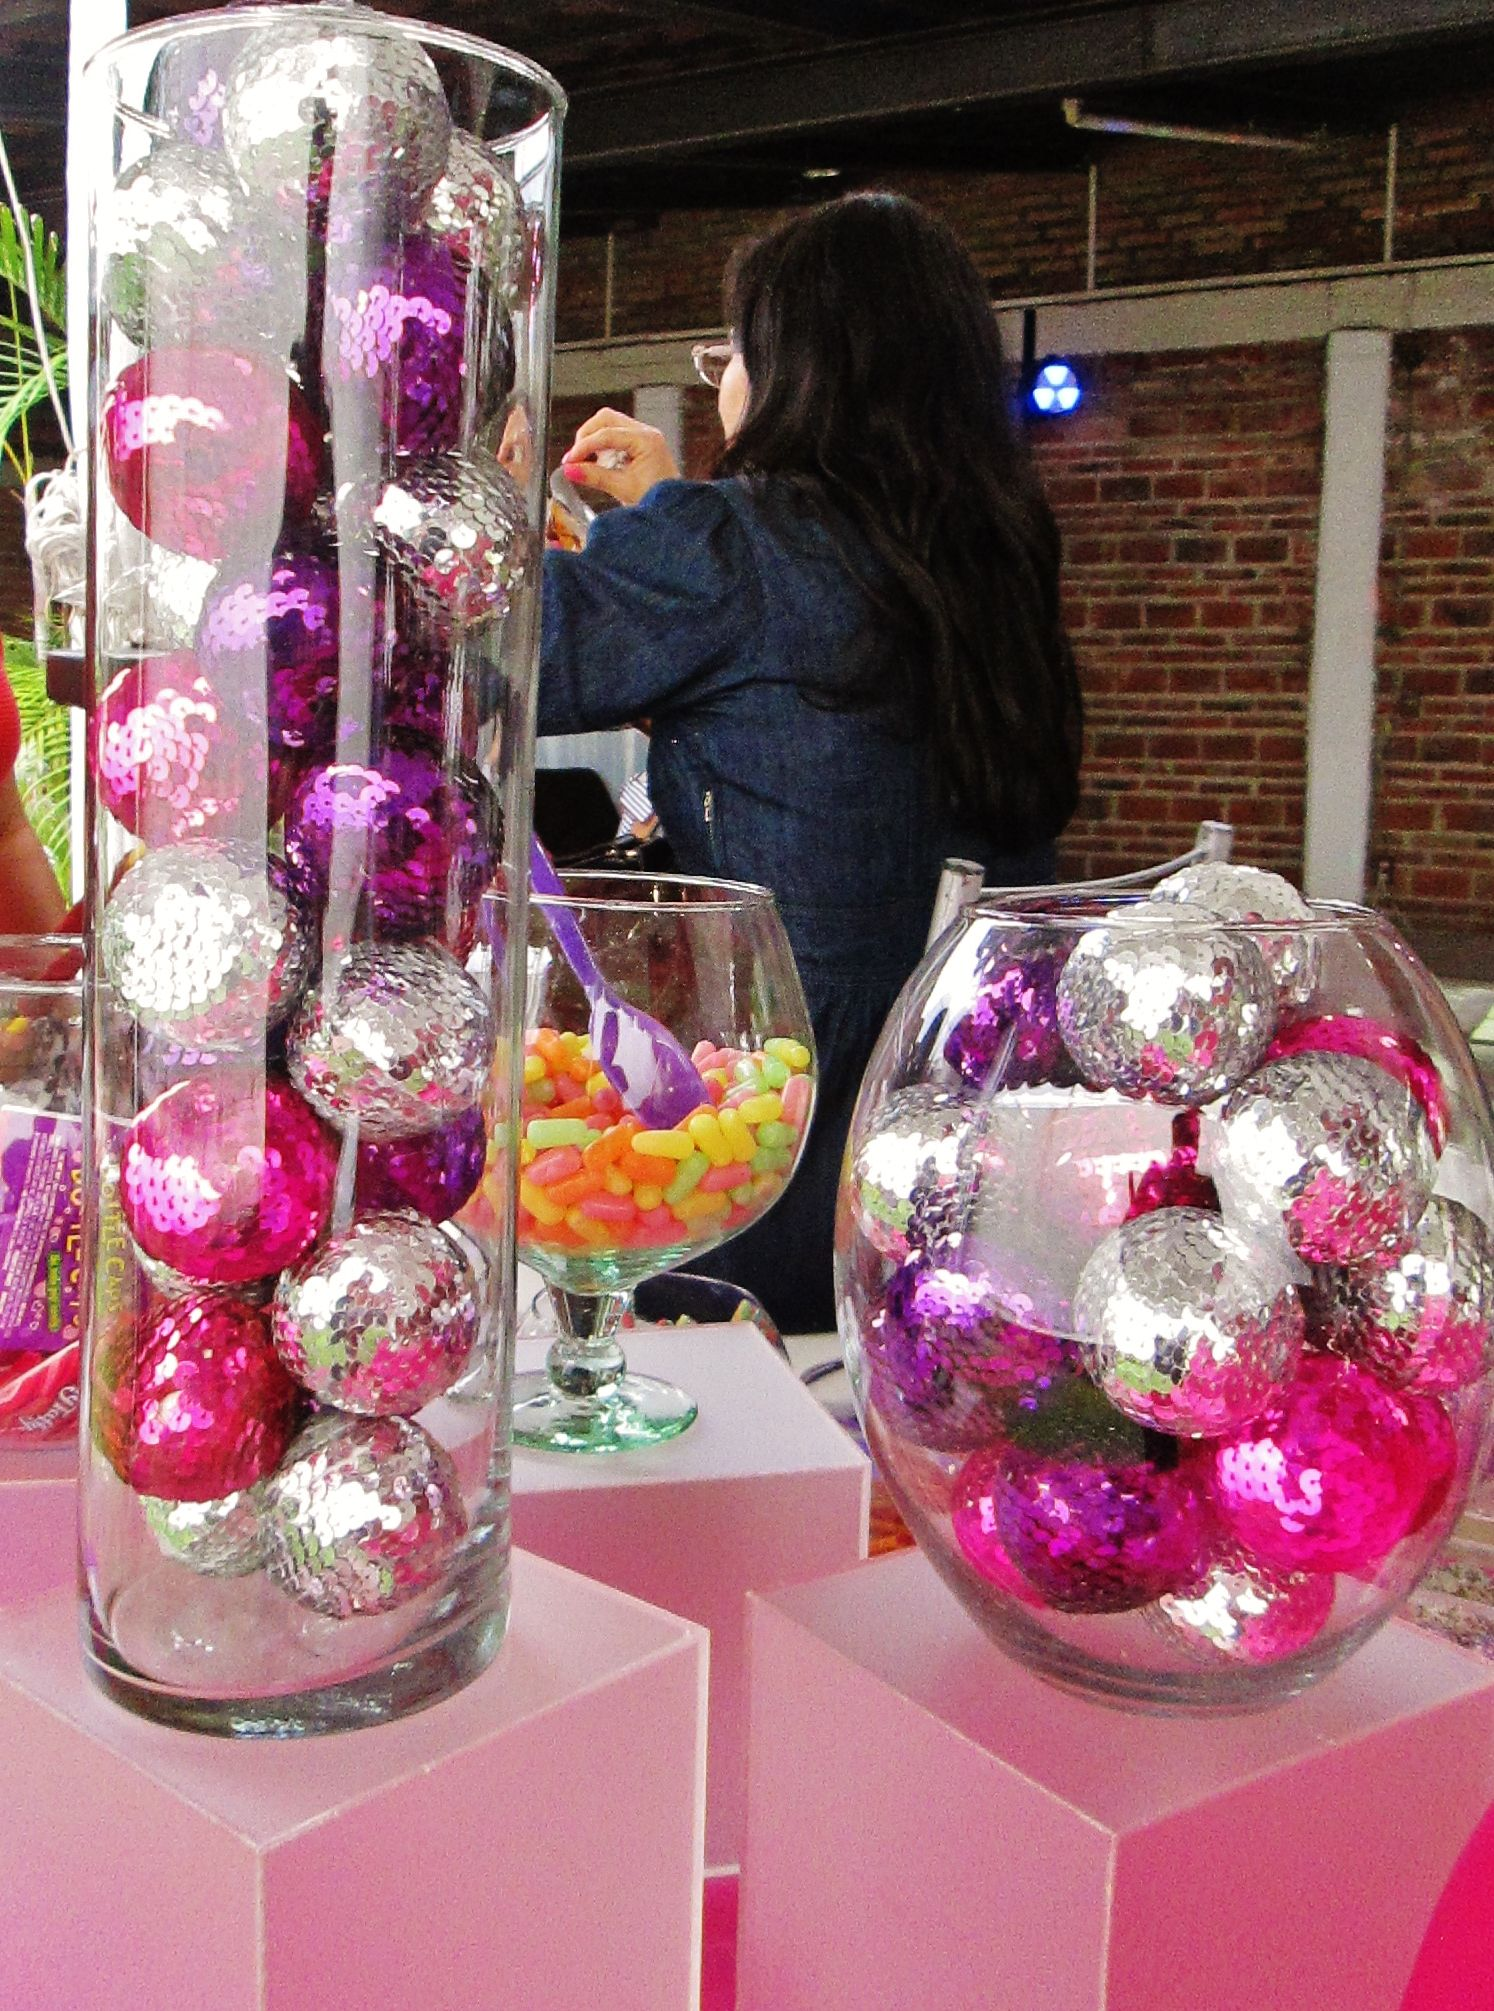 Christmas Decorations Used For Centerpieces For Disco